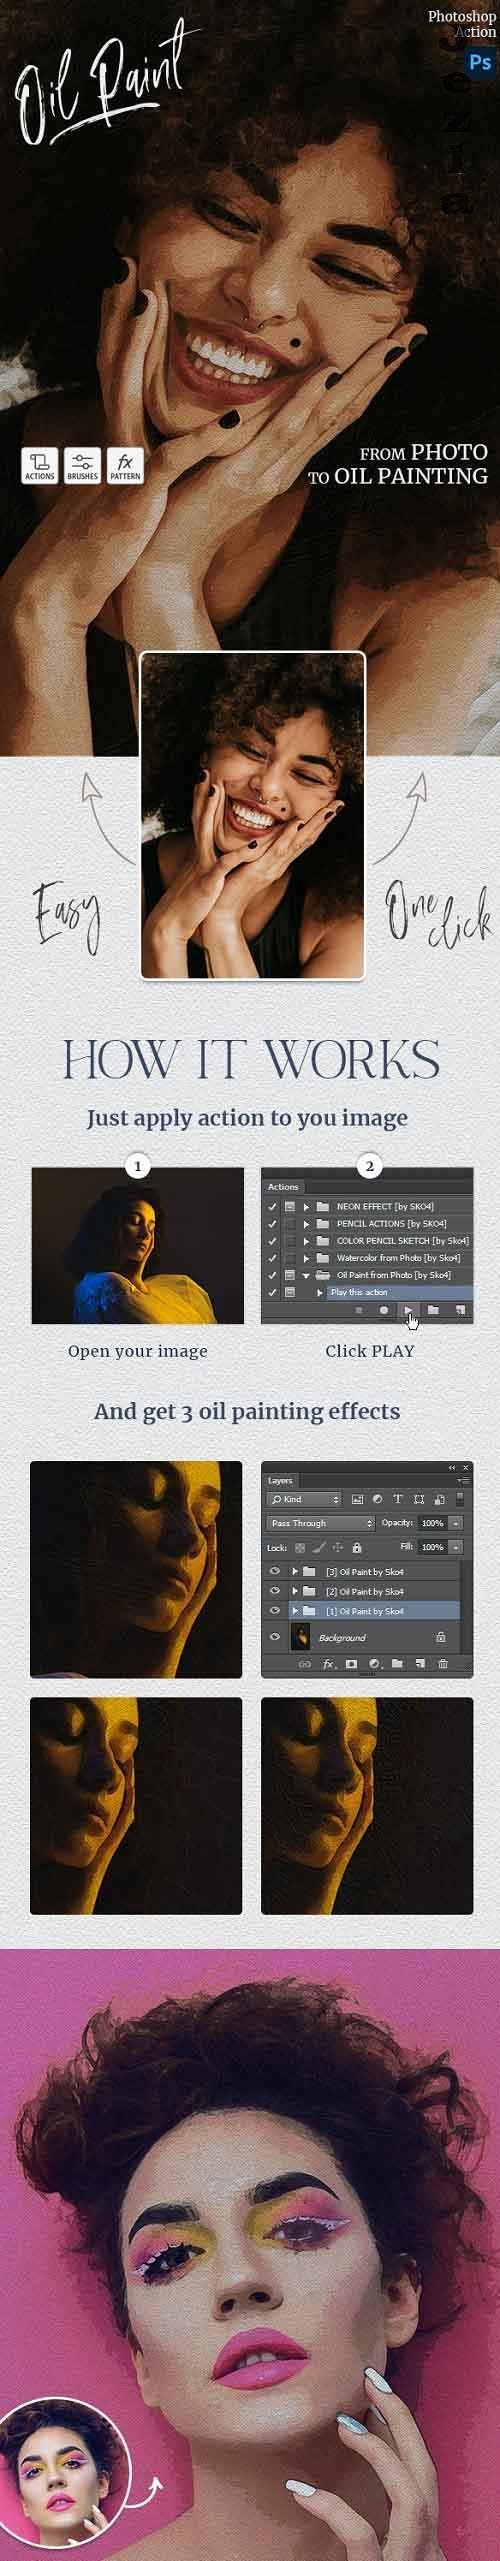 Oil Paint Photoshop Action 28825502